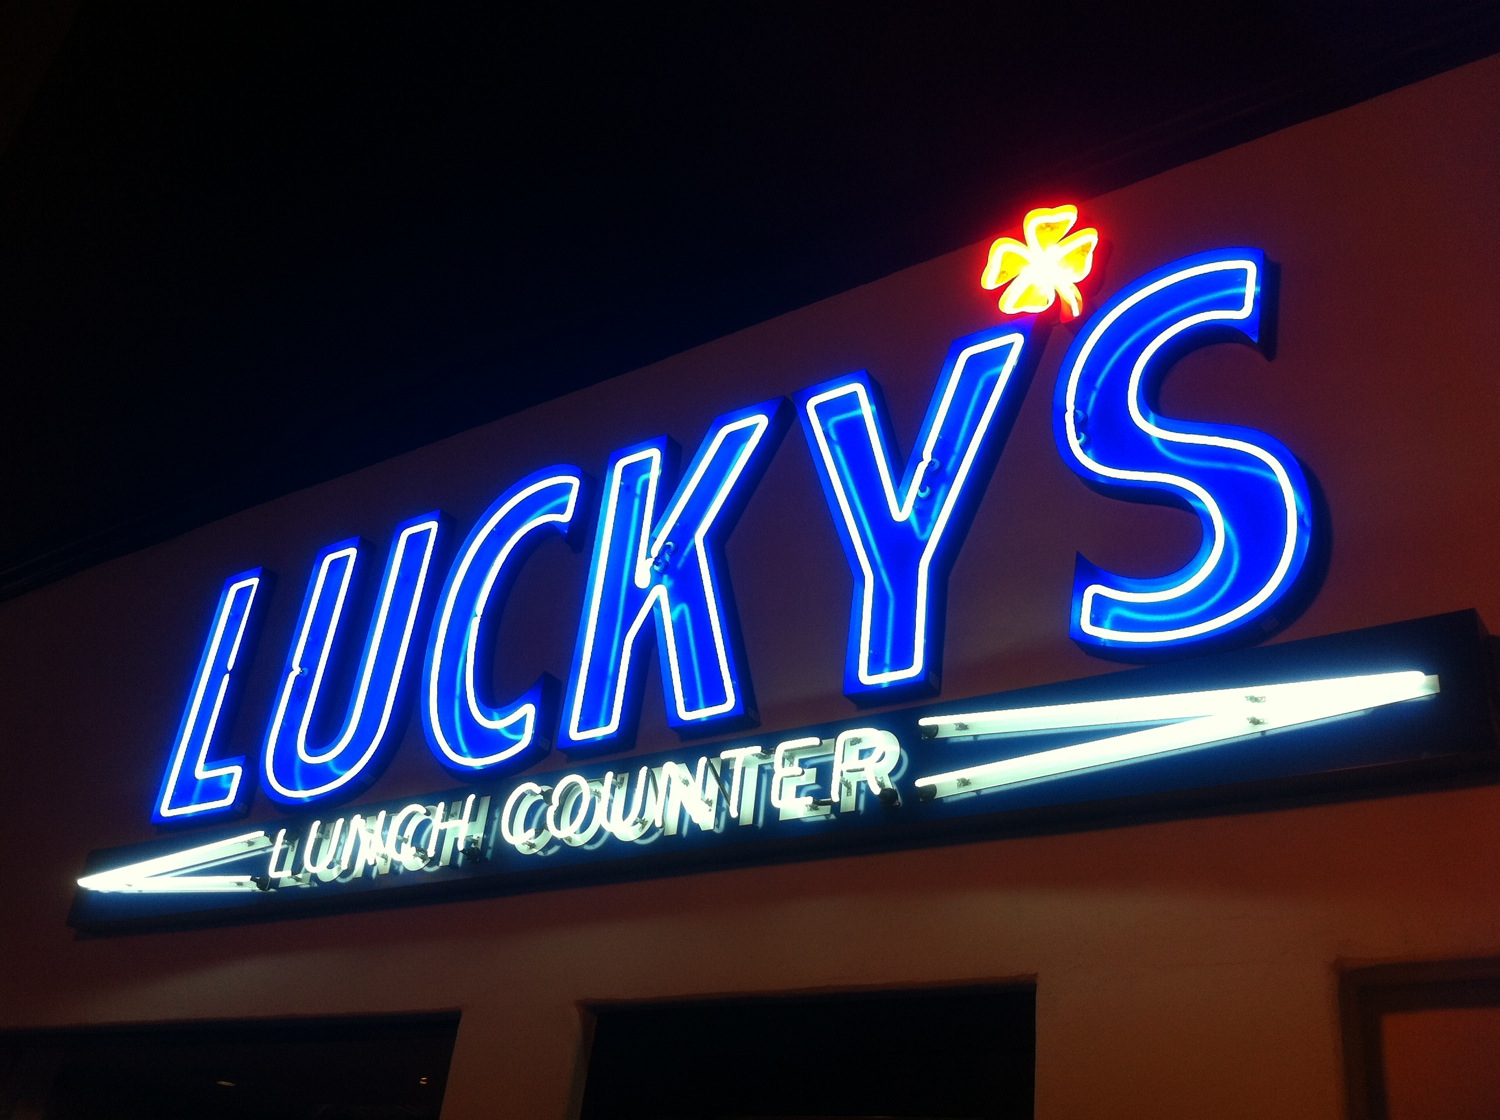 Luckys%20Lunch%20Counter%205.jpg